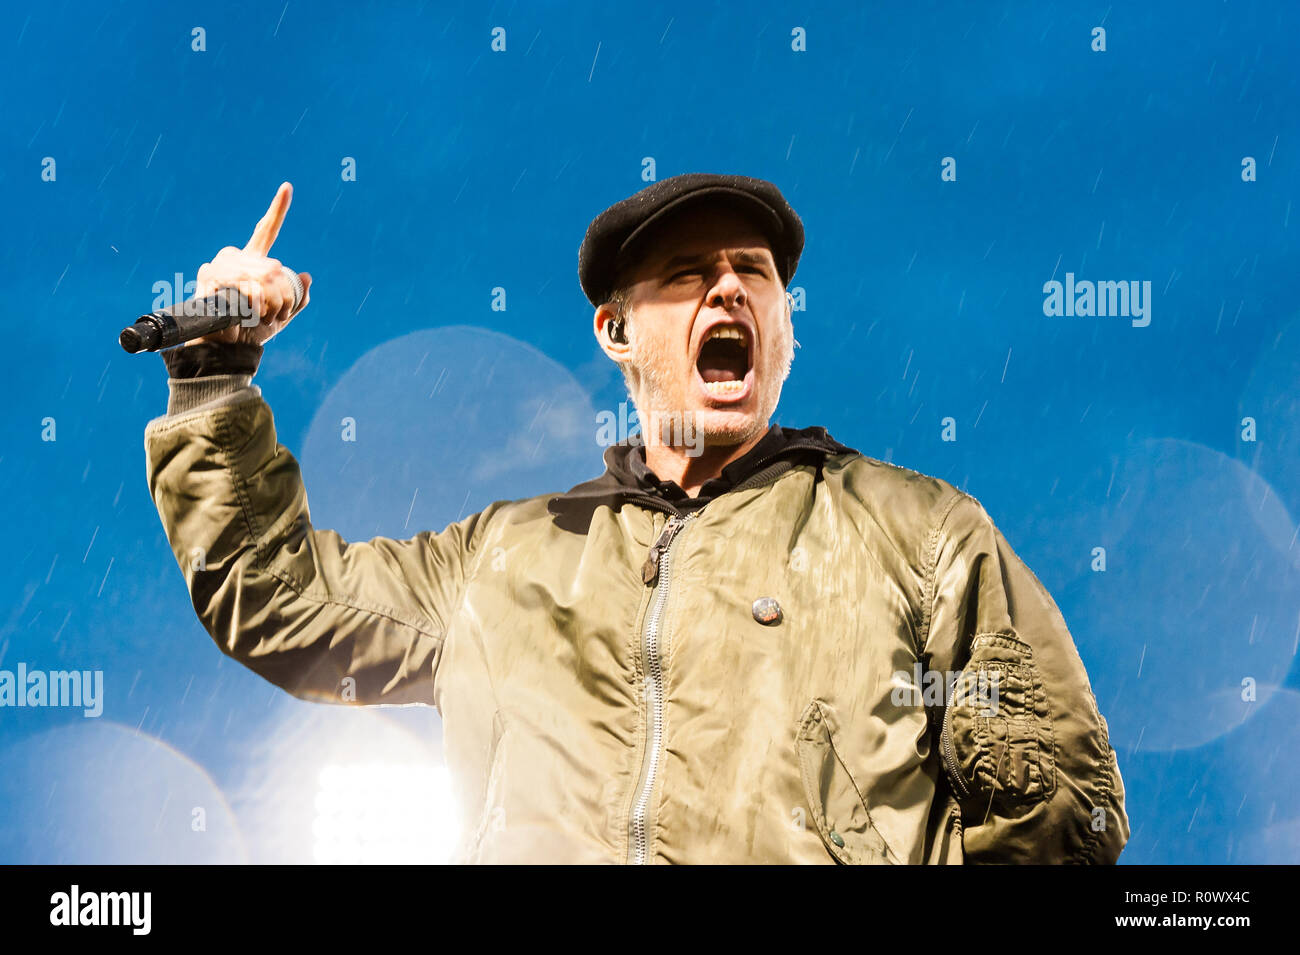 Al Barr, lead singer for the Dropkick Murphys, yelling out a song at their Fenway Park show. - Stock Image